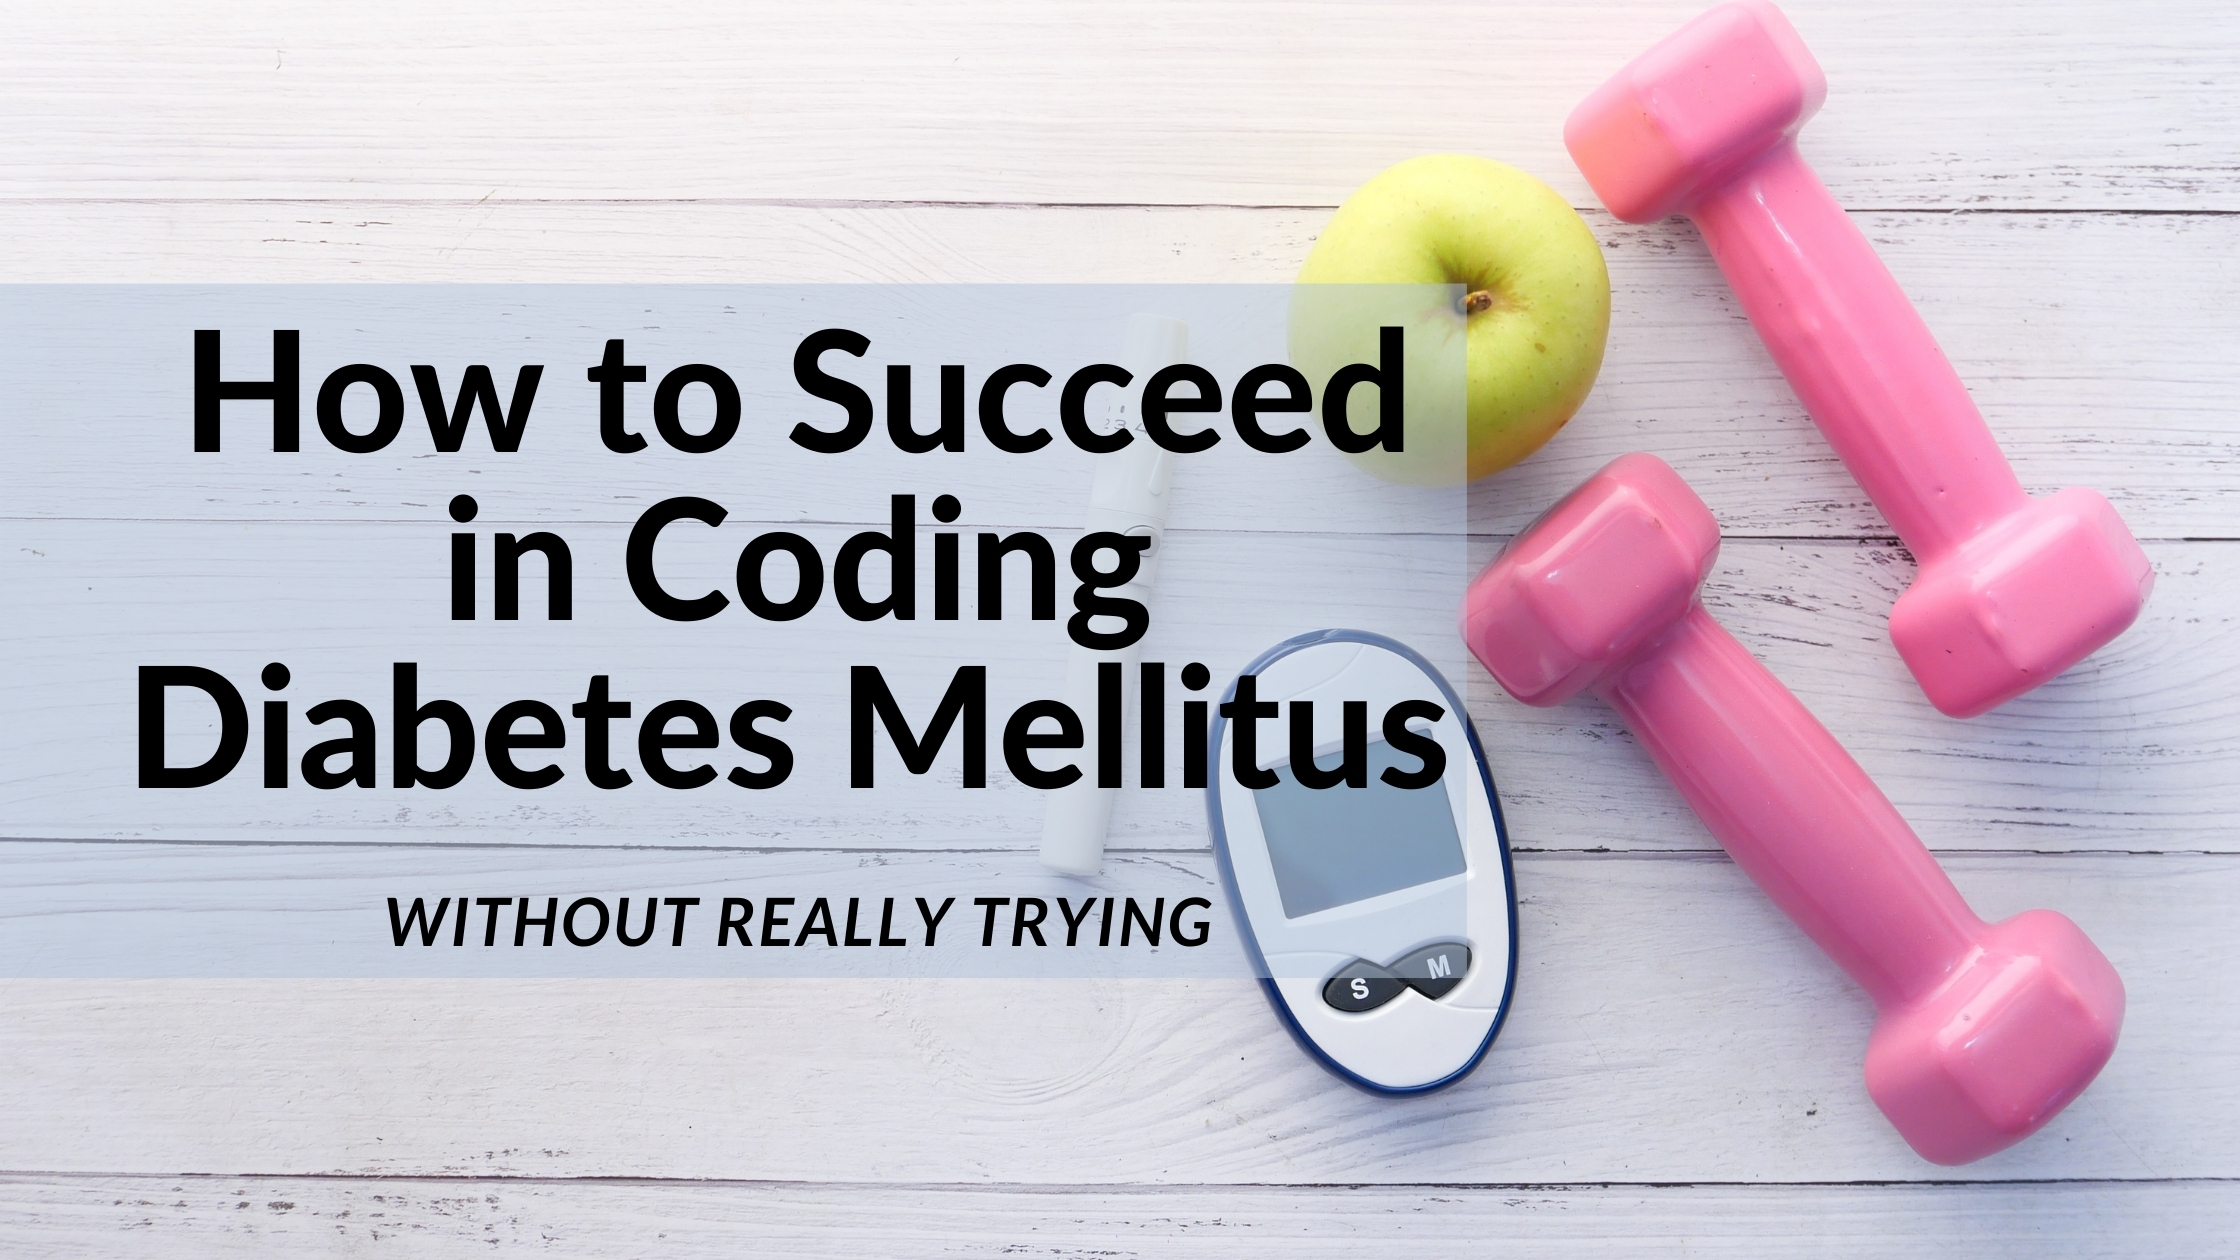 How to Succeed in Coding Diabetes Mellitus Without Really Trying